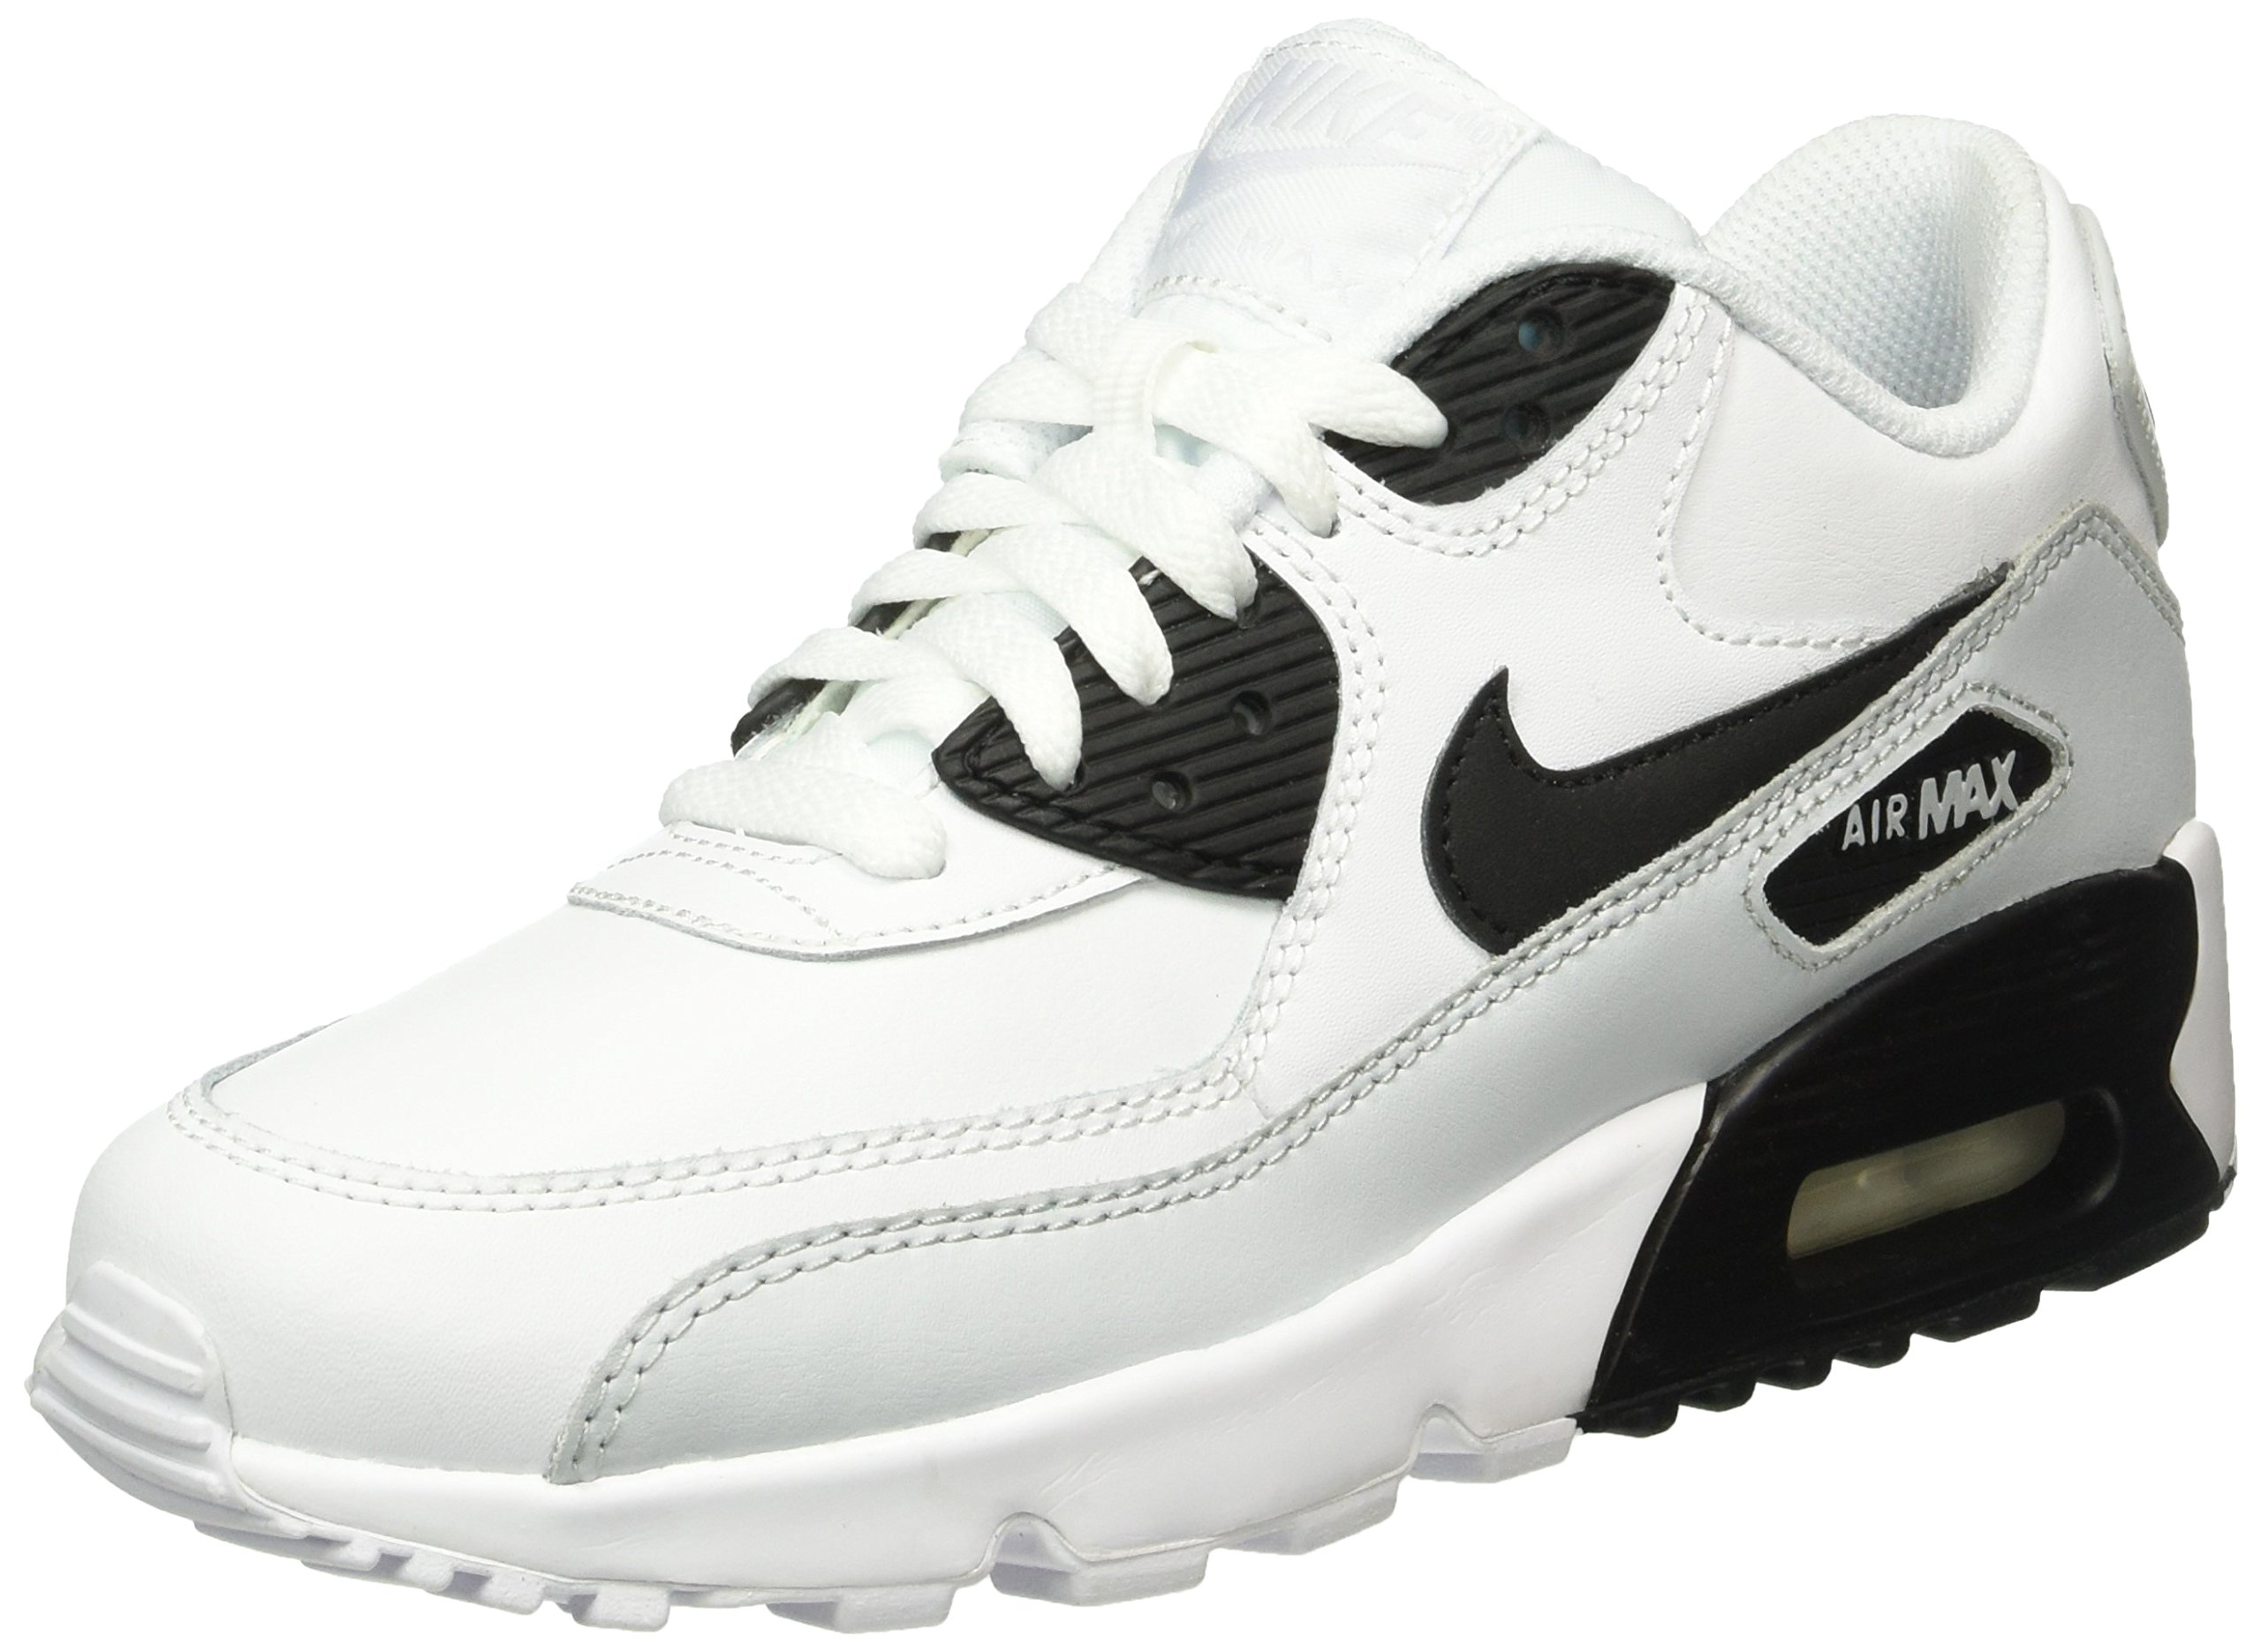 promo code cfbdd 8c78f Galleon - Nike Kids Air Max 90 Ltr (GS) White Black Pr Platinum White  Running Shoe 6 Kids US